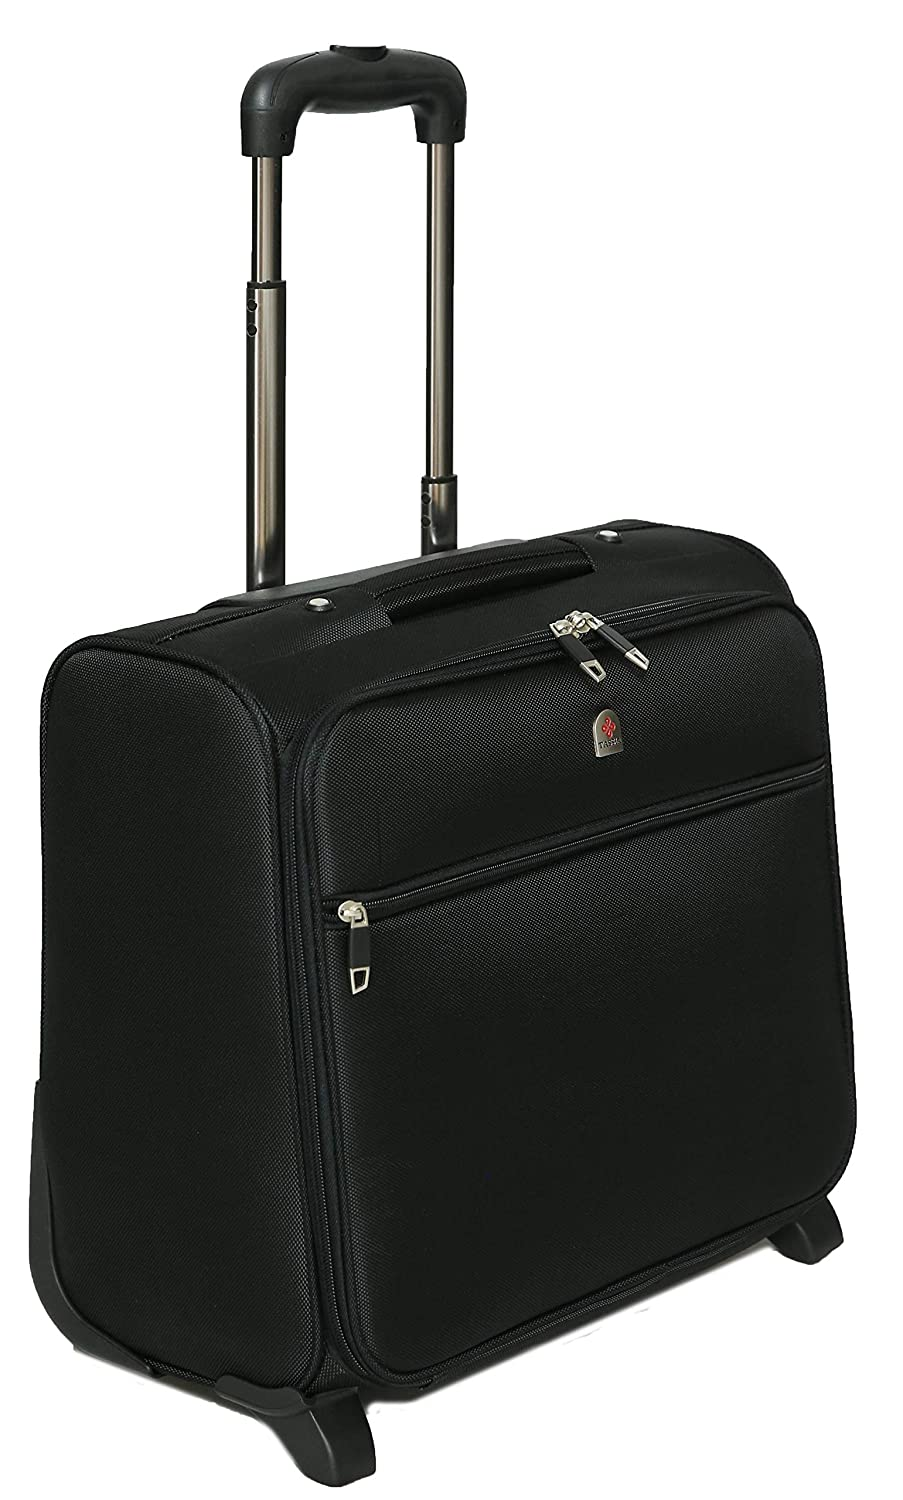 Tassia High Quality Laptop Roller Case - Large Stowage Area - 2 Wheel